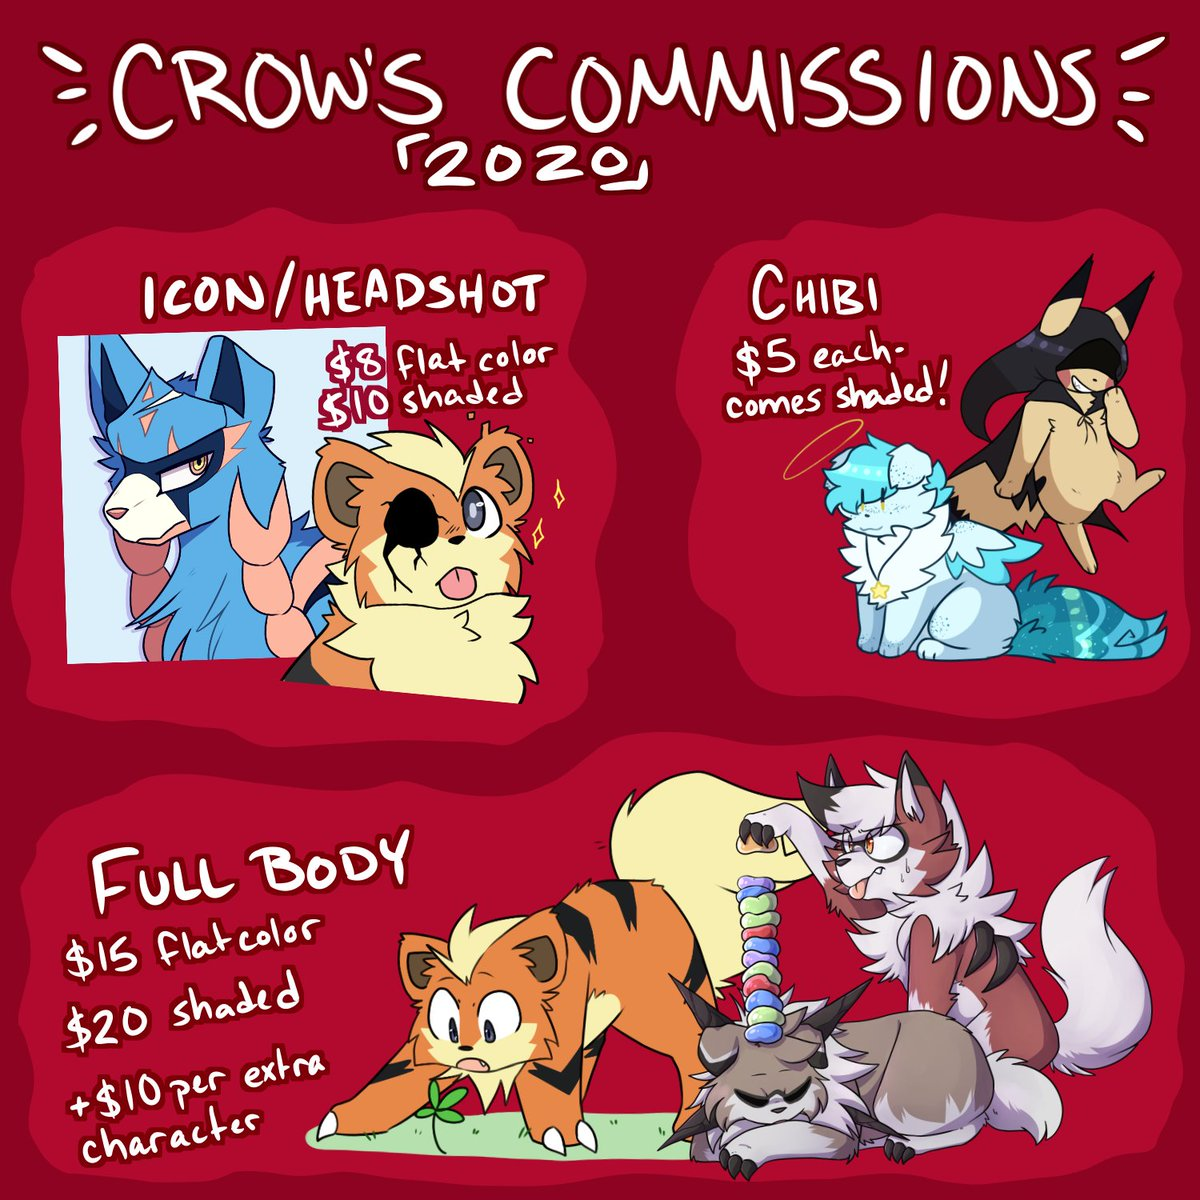 COMMISSIONS SHEET 2020!! paypal much preferred, may take dA points!! best contact dA @ mcdoggo via notes or discord if you have me! furries/pokemon only <br>http://pic.twitter.com/lLOUuiLKC2